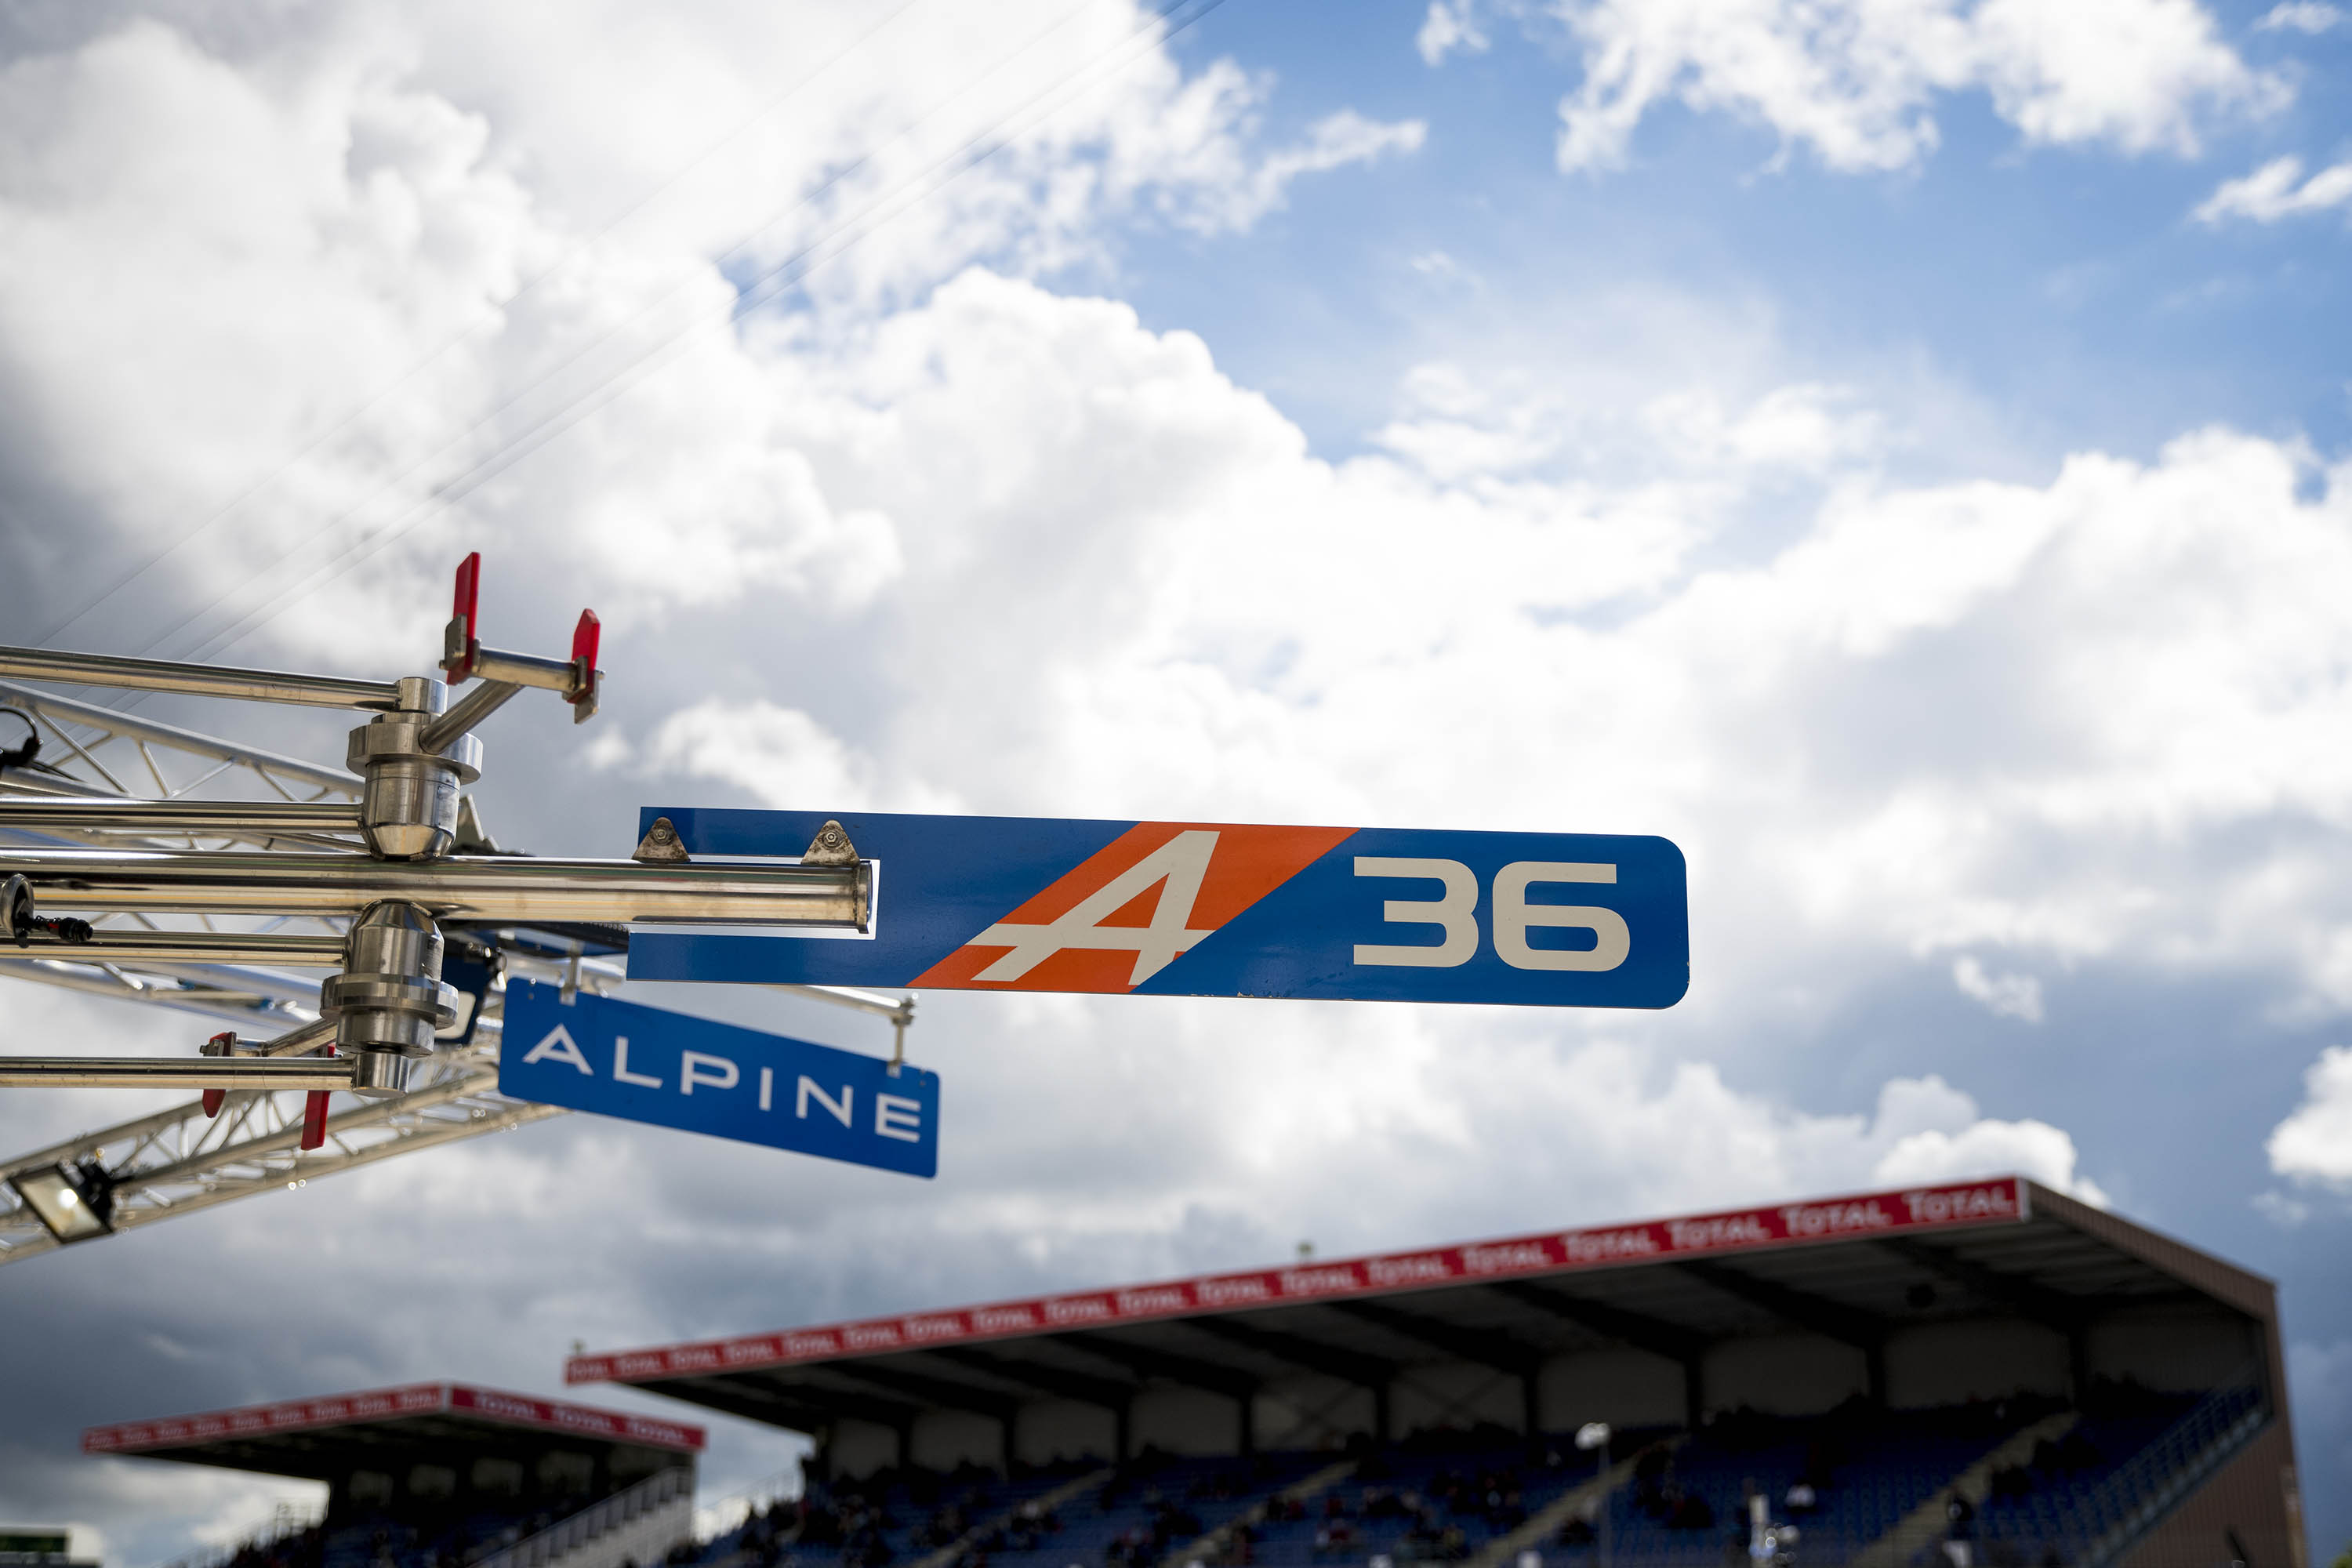 MRS_Alpine_LeMans2019_02013